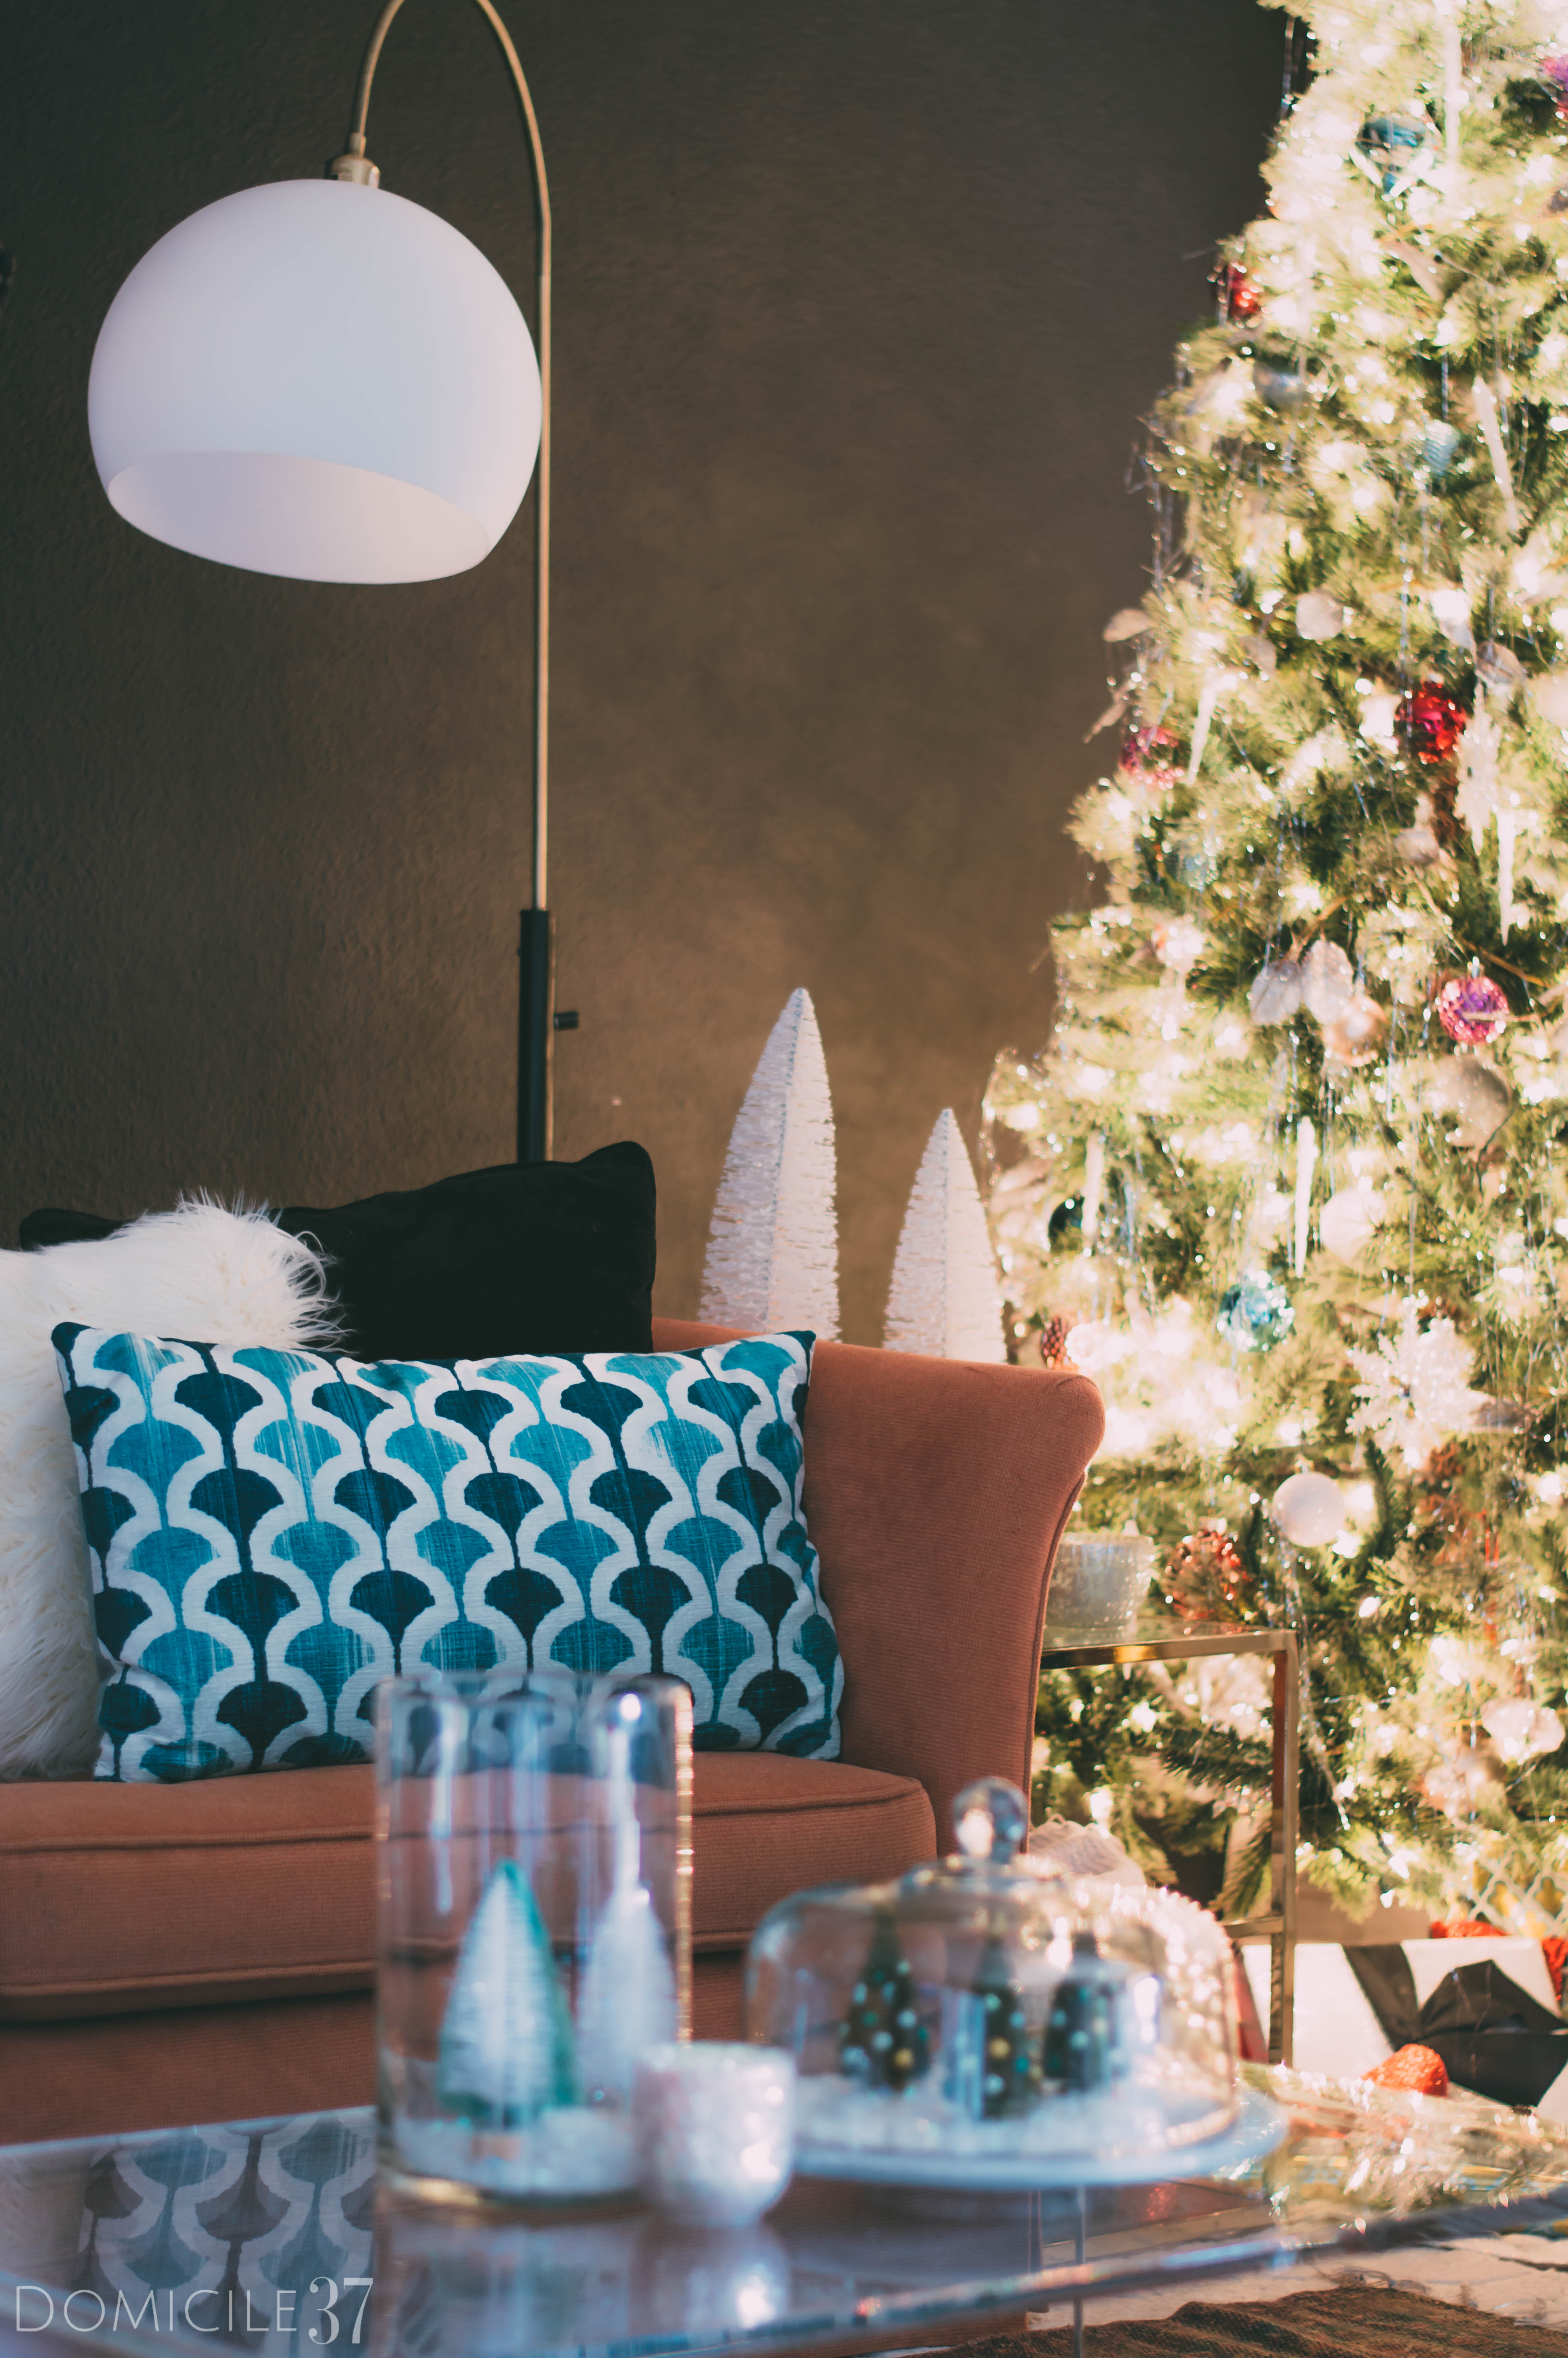 World Market | World Market Pillows | Fur pillows | Blue pillows | global pillows | Christmas pillows | Christmas decor | Christmas on a budget | Inexpensive Christmas decor